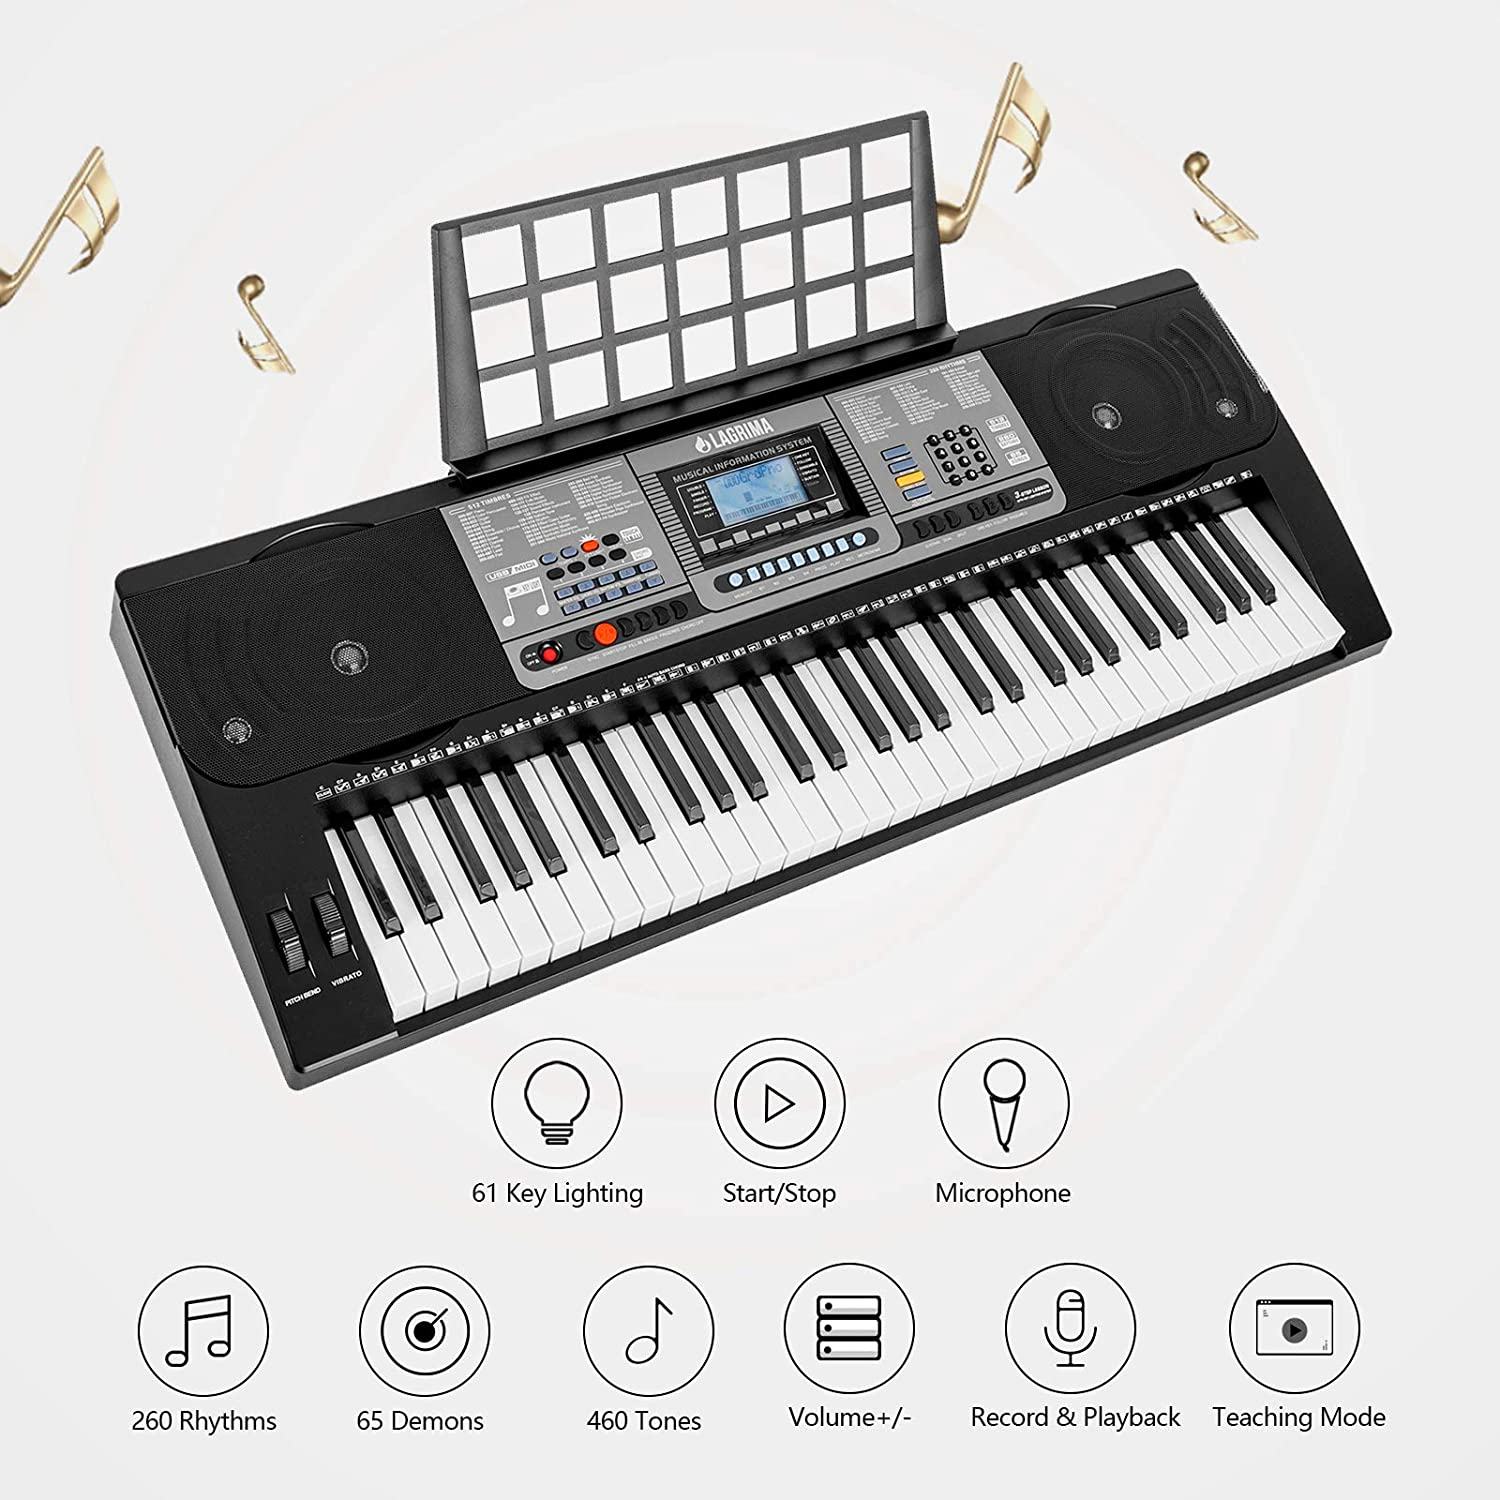 LAGRIMA 61 key Electric Keyboard Piano w/Light up Keys, Lighted Touch  Sensititive & USB-Midi(App) Keyboard for Beginner w/Micphone, Power Supply  and